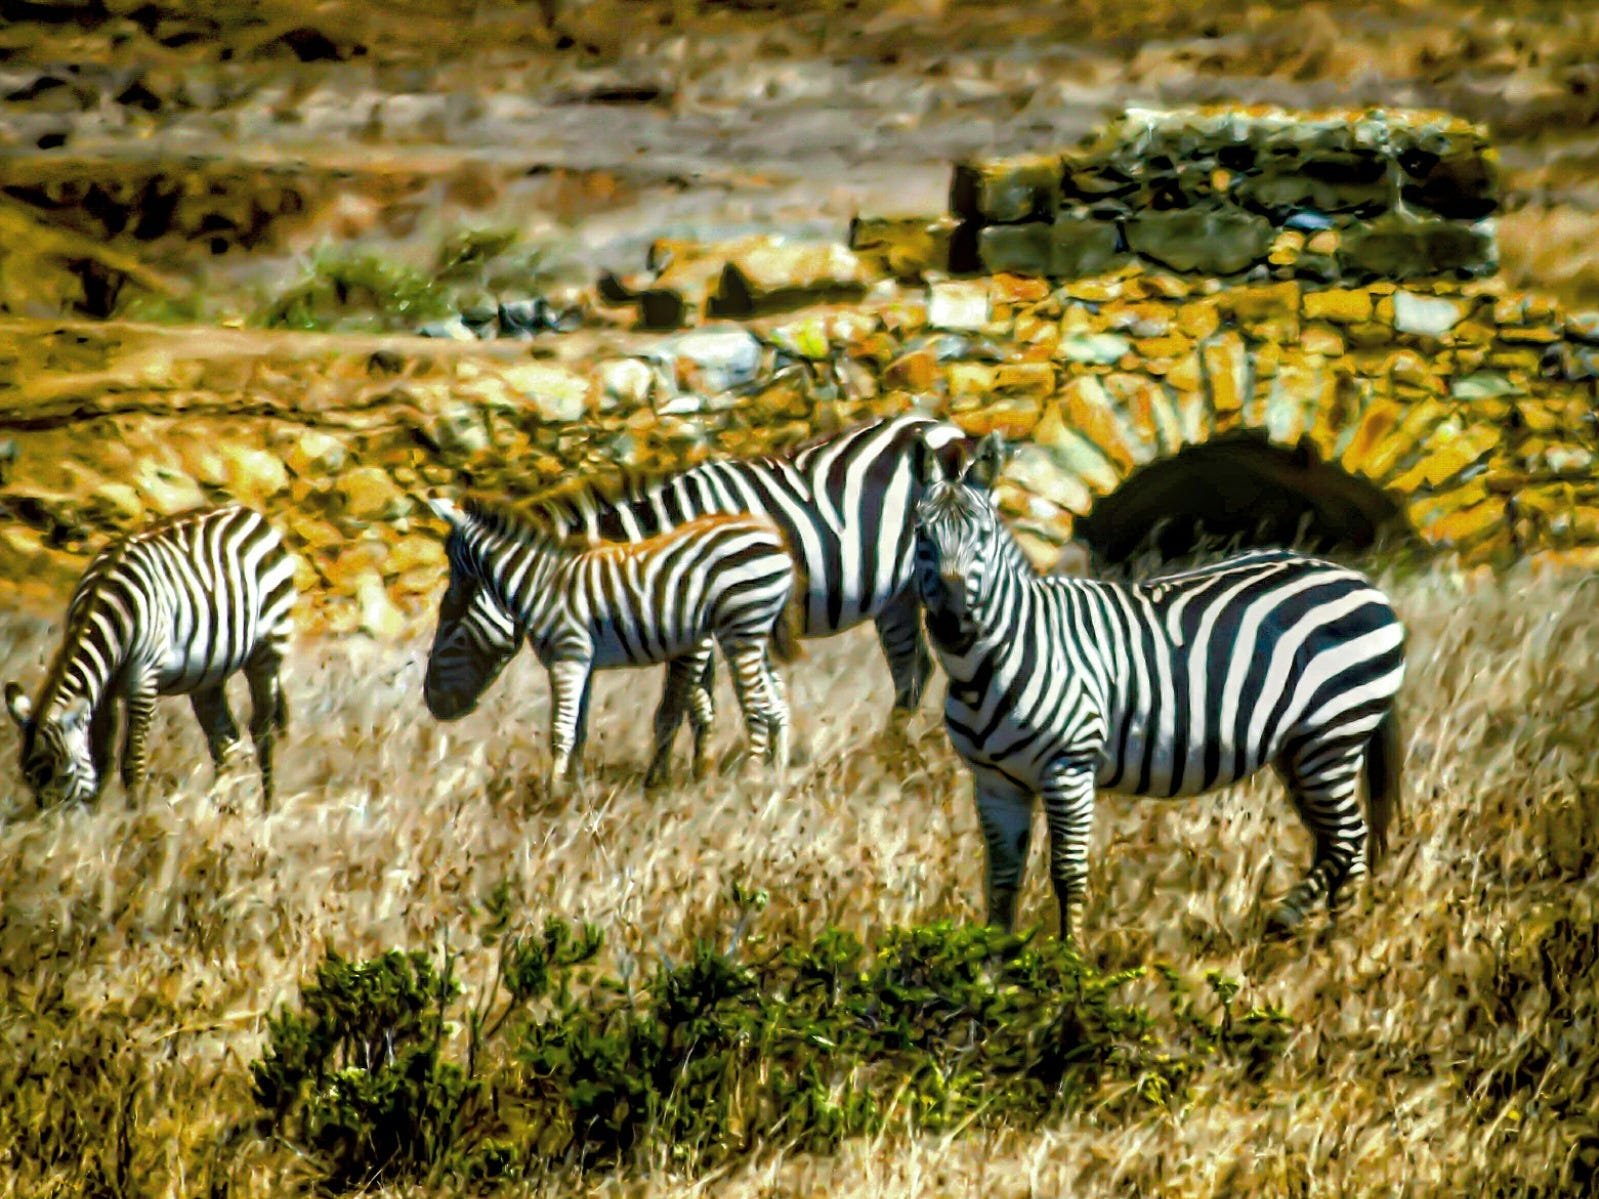 You can even see the site of what was once the largest private zoo in the whole country. If you're lucky, you might be able to spot some of the wild descendants of the zoo's zebras wandering the grounds.